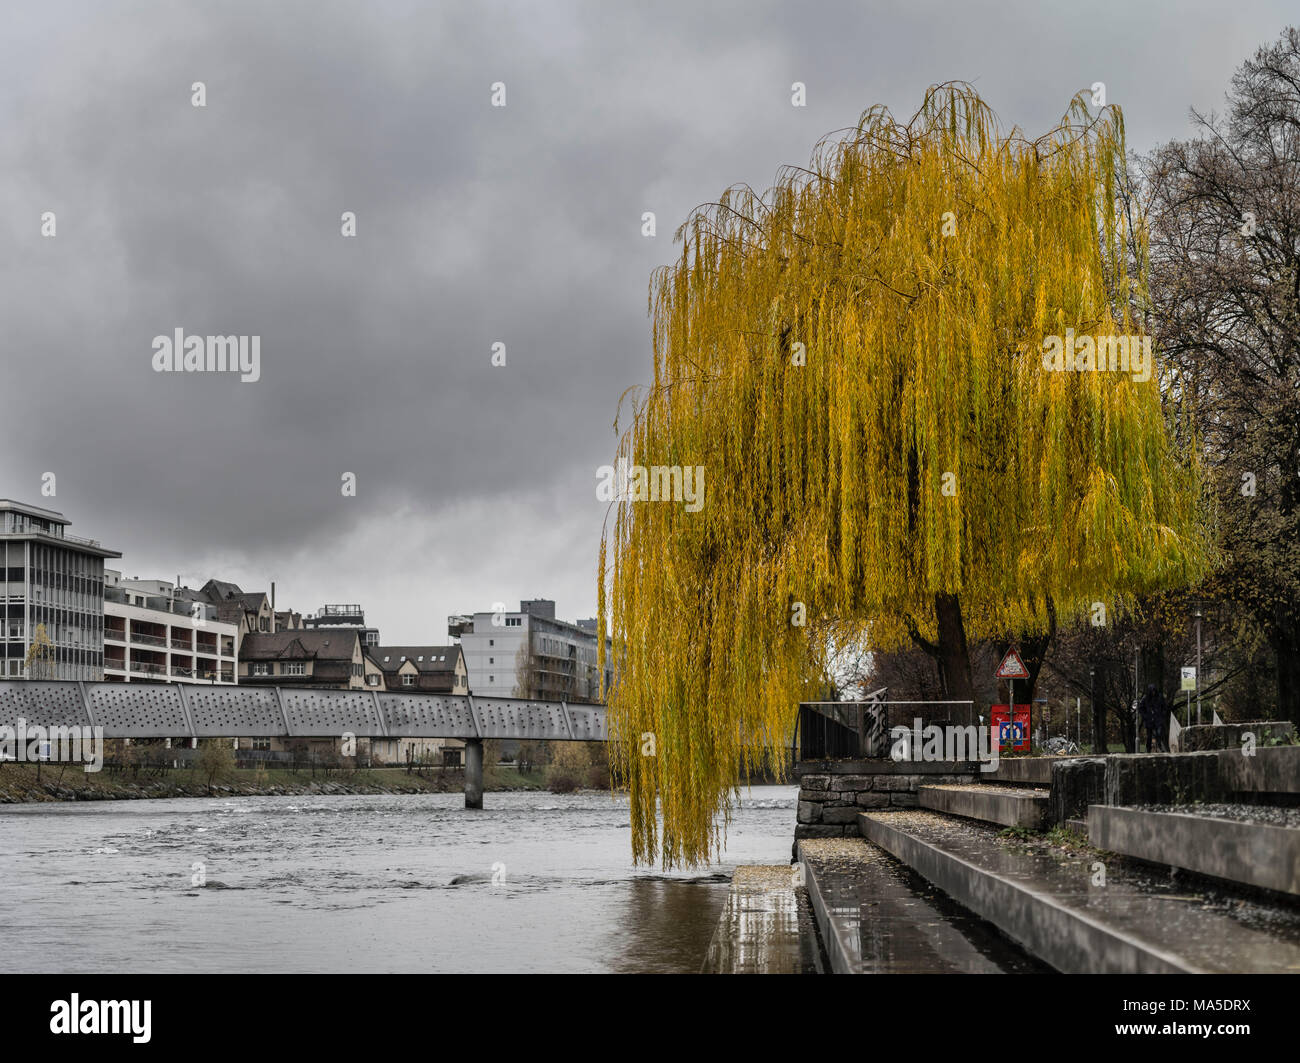 Willow on the riverbank on a dull autumn day - Stock Image